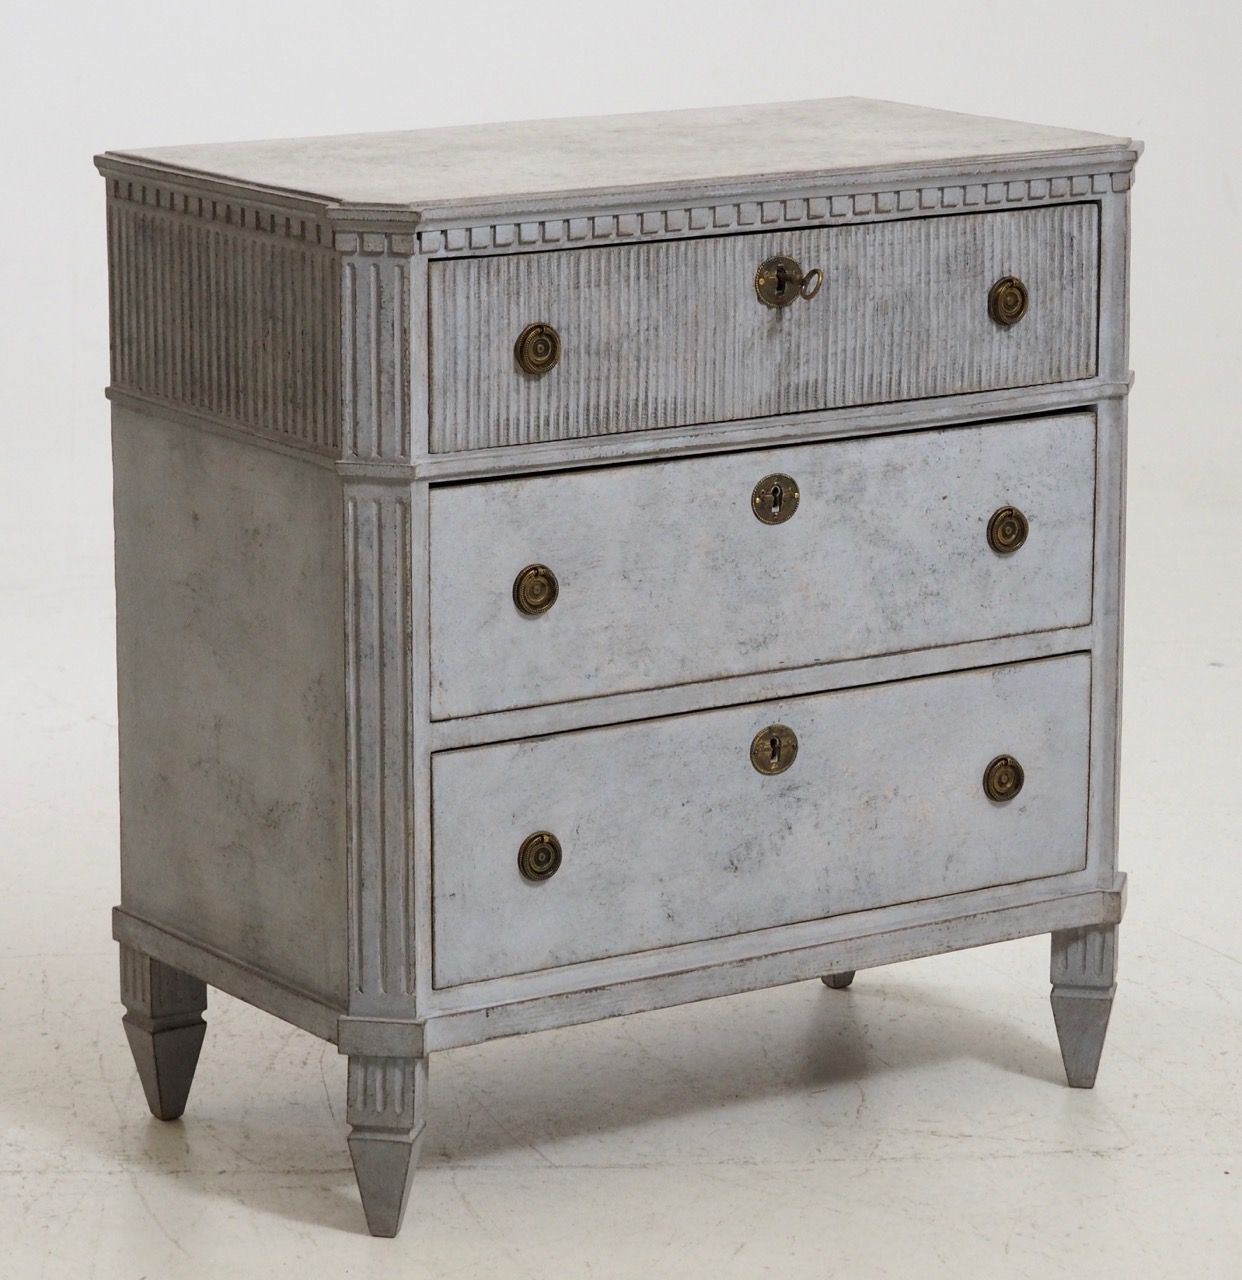 Antique gustavian style chest of drawers with old lock and